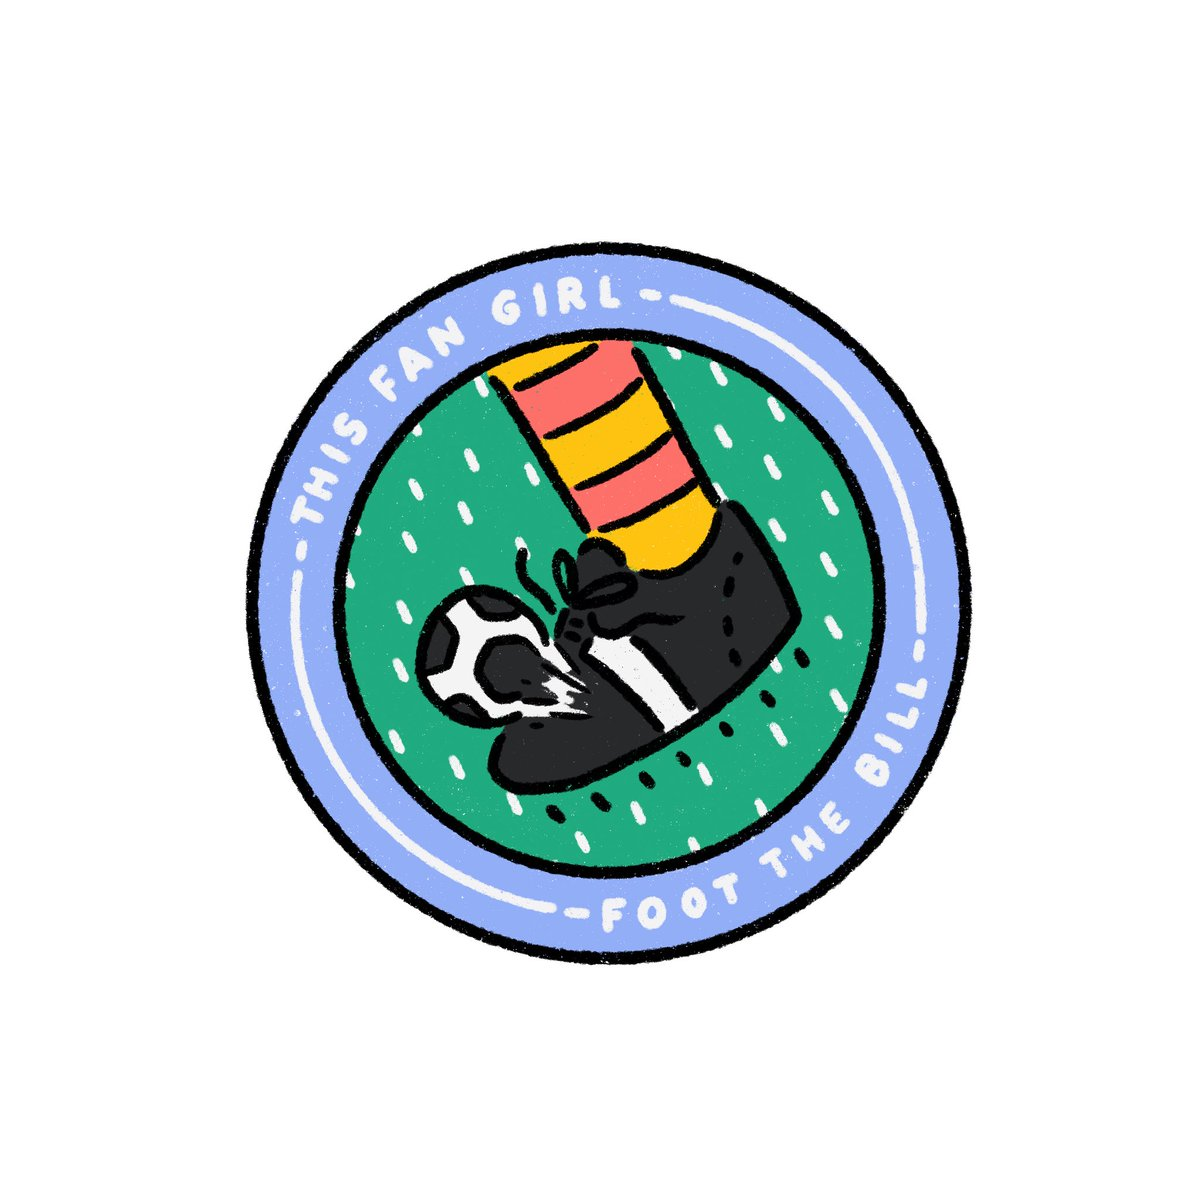 🔊 Calling all femxle creators! We're very excited to open a @ThisFanGir1 first, the #FootTheBill fund which will provide £1000 to a bring a creative football project to life! RTs appreciated to spread the word! Full details here: thisfangirl.com/footthebill